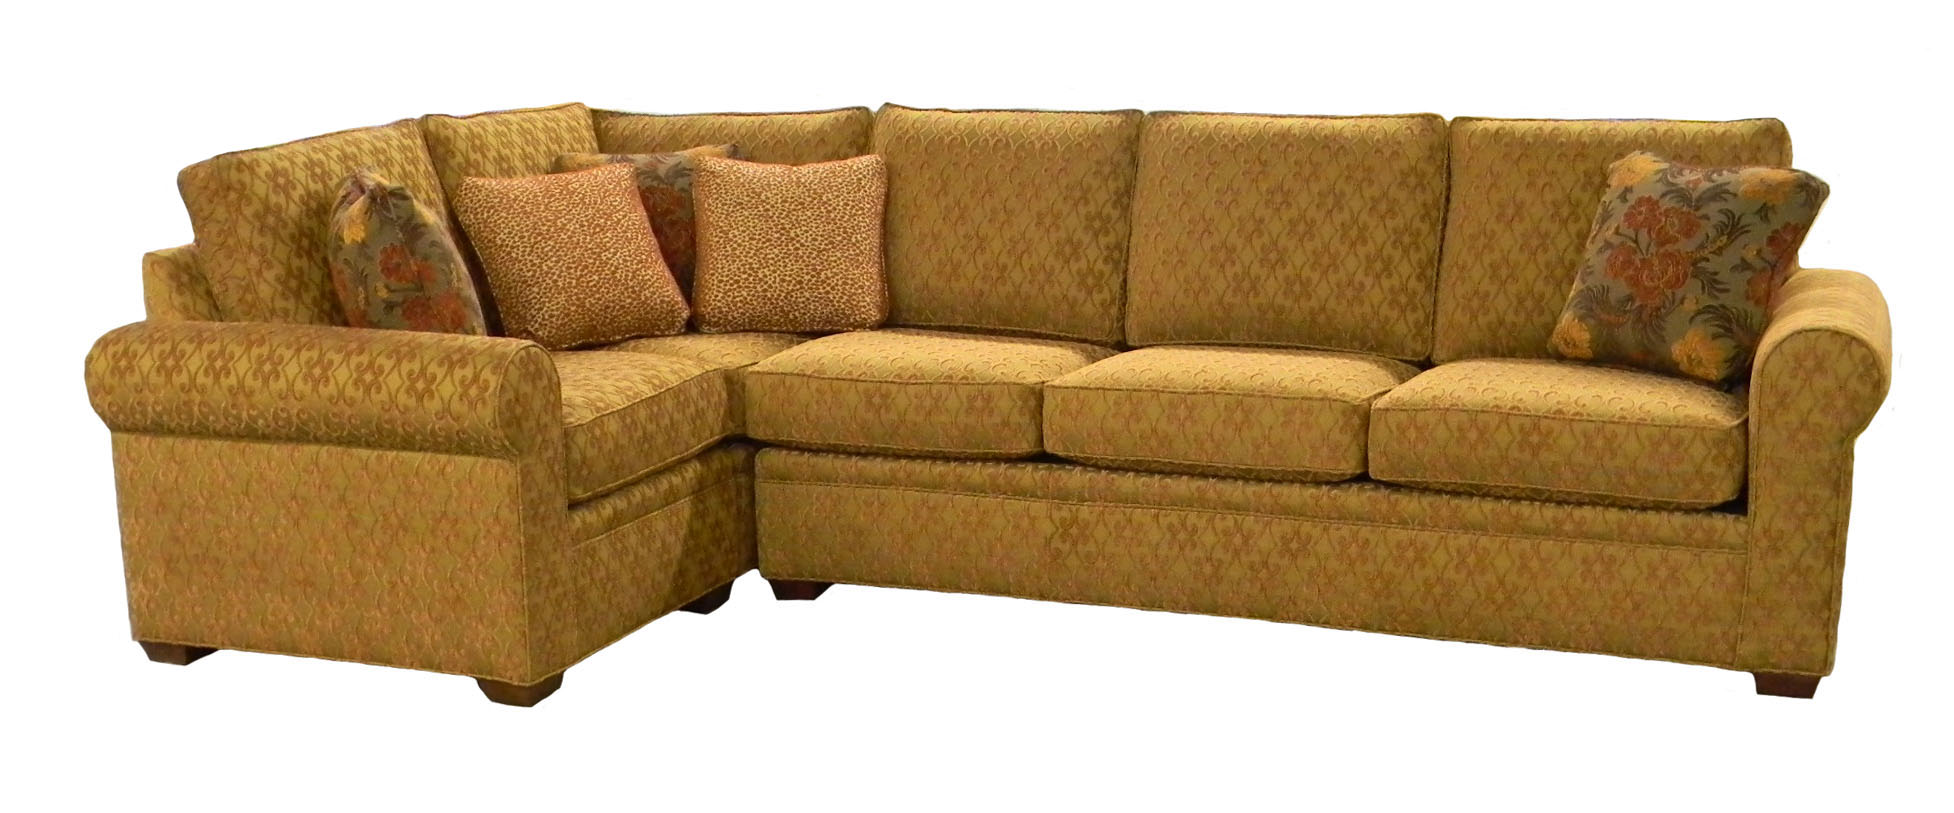 Storage Ottoman Sectional Sofa Dimensions 90 5 X 115 5